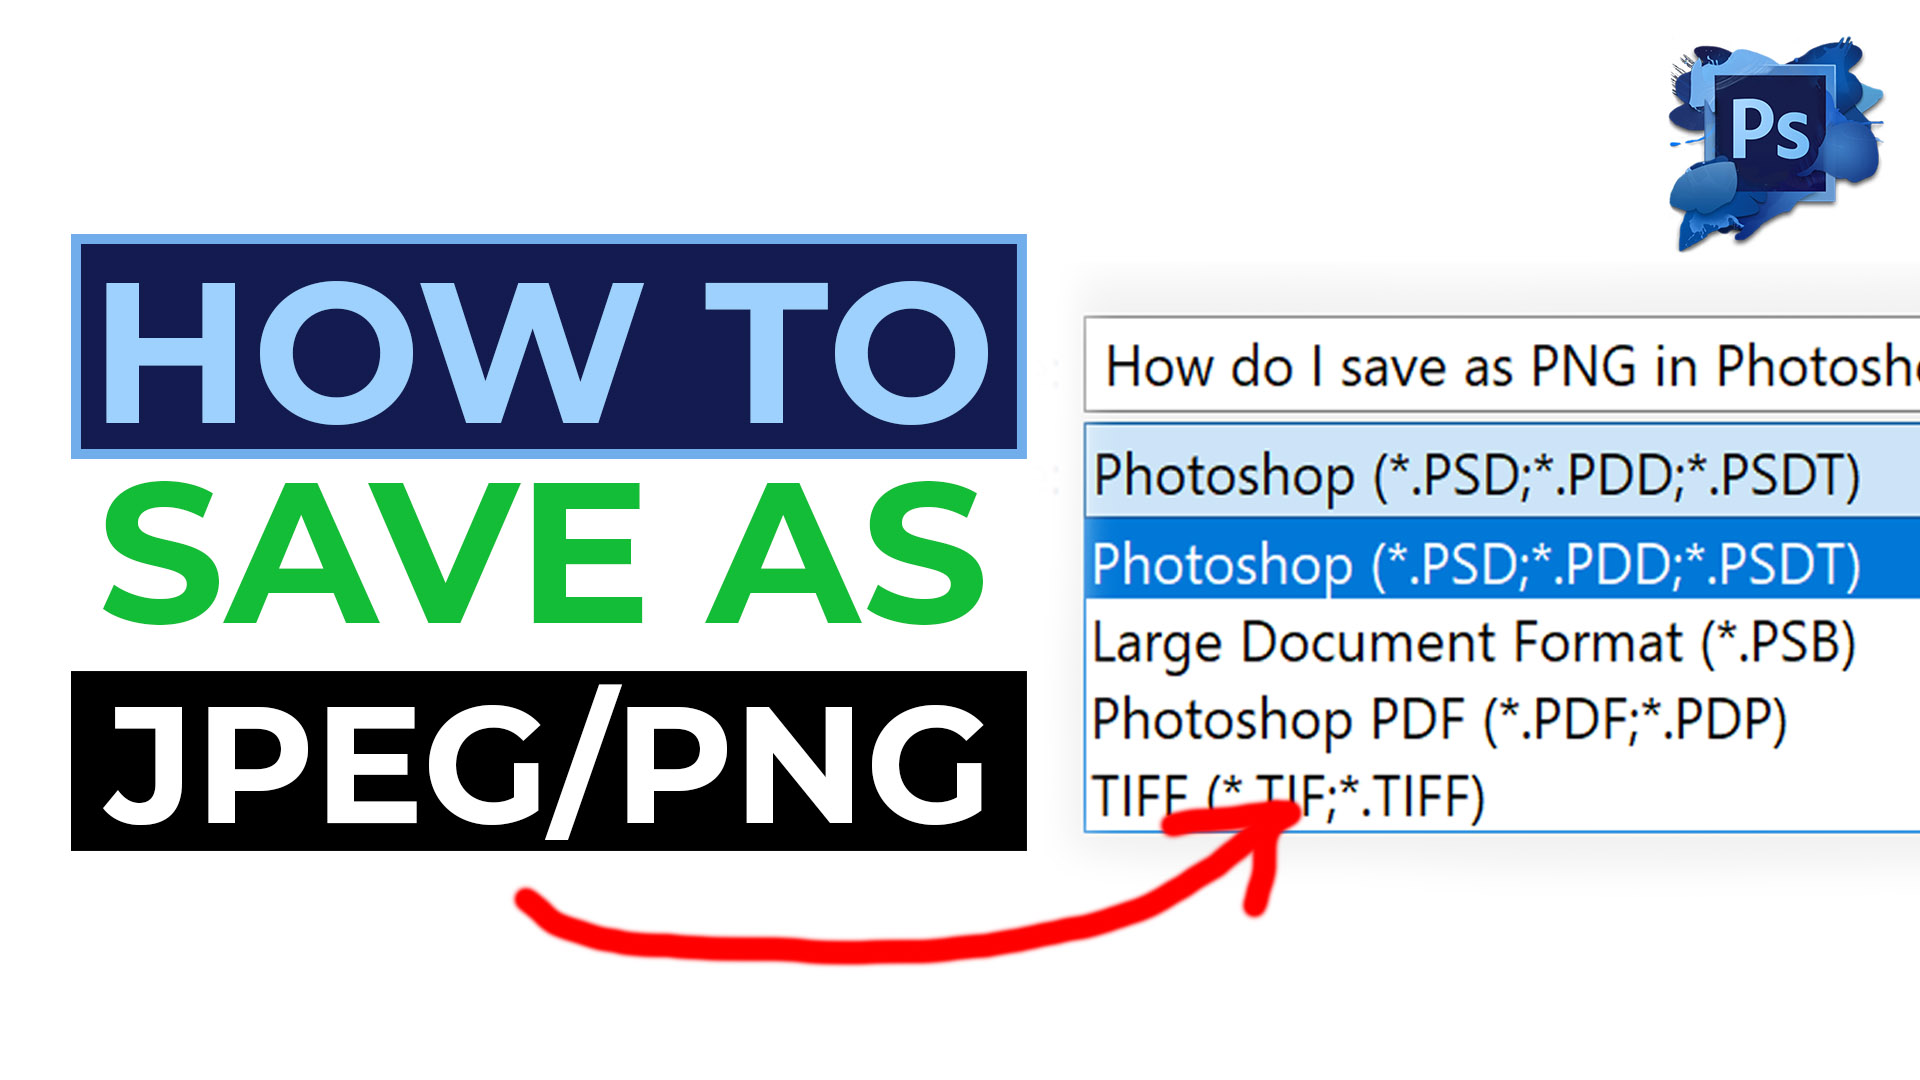 How do I save as PNG in Photoshop 2021